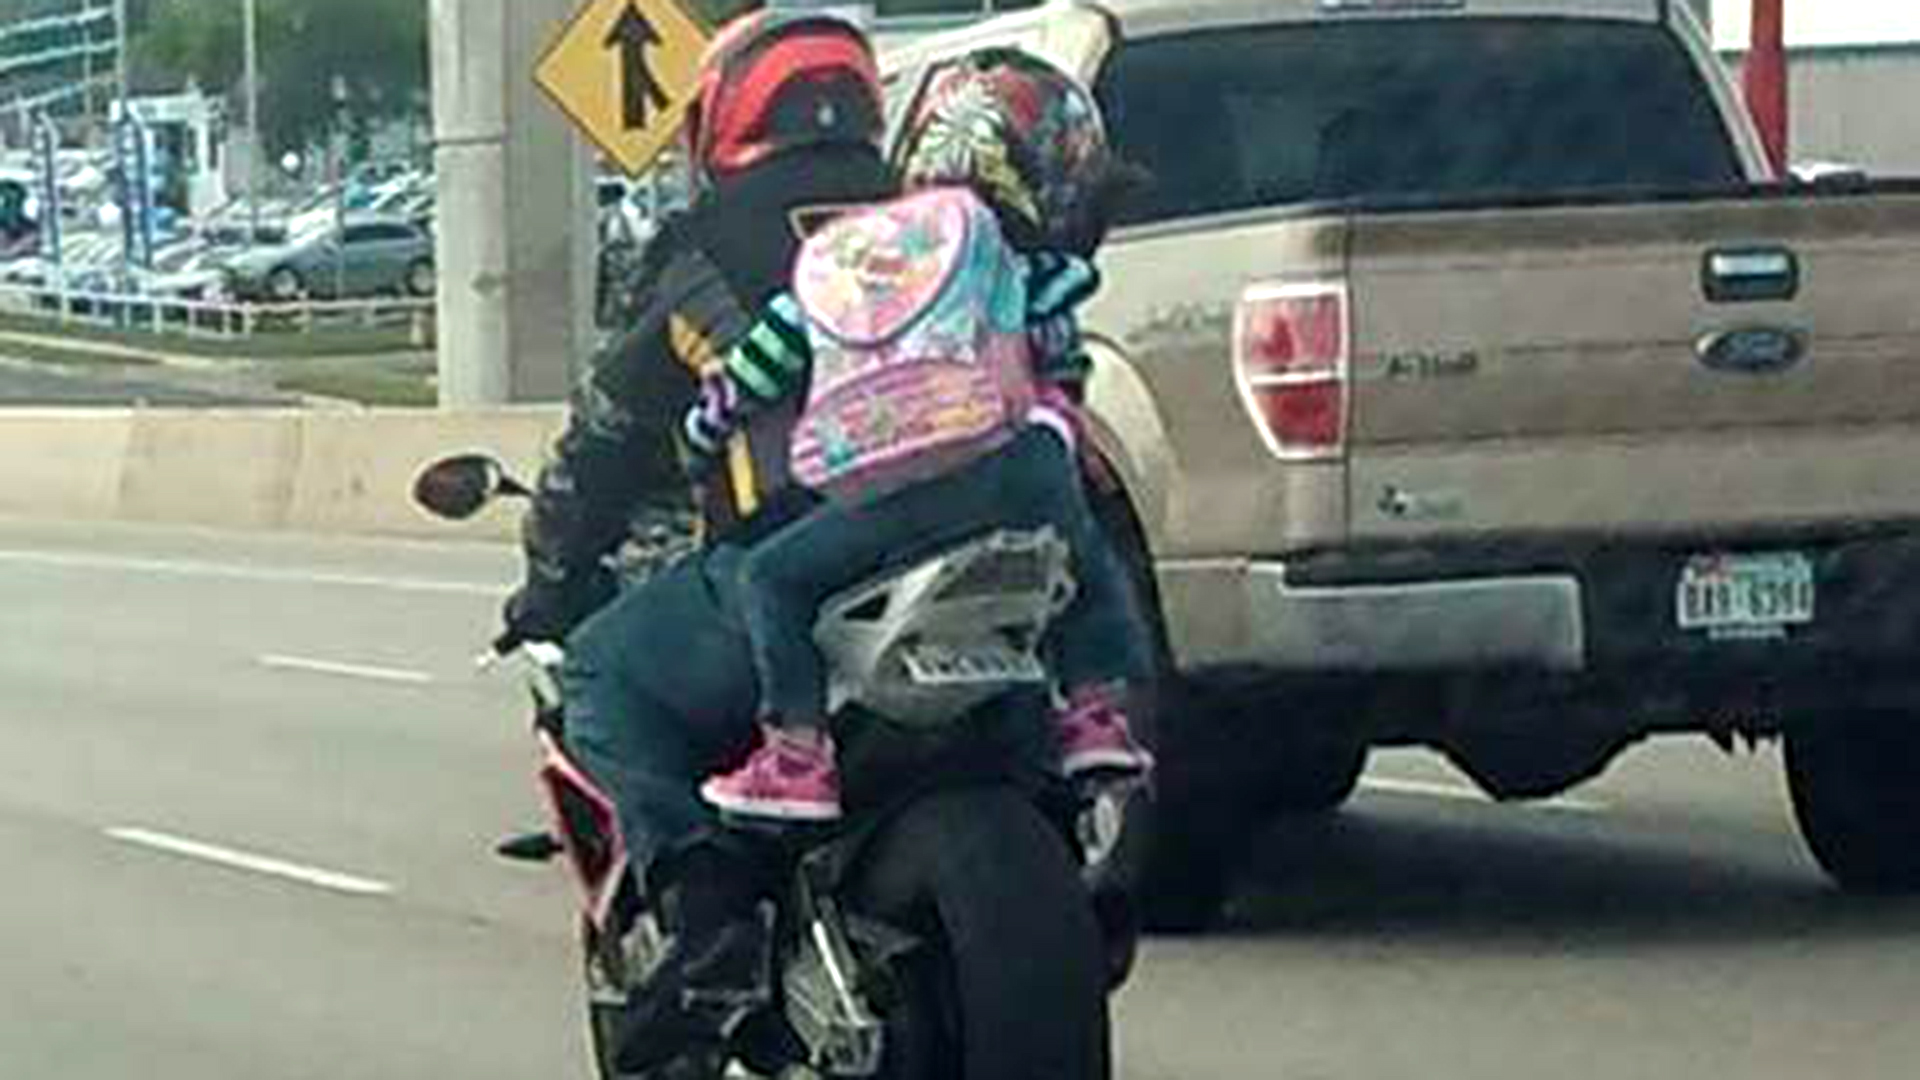 Mom Responds To Critics Of 7 Year Old Riding Motorcycle